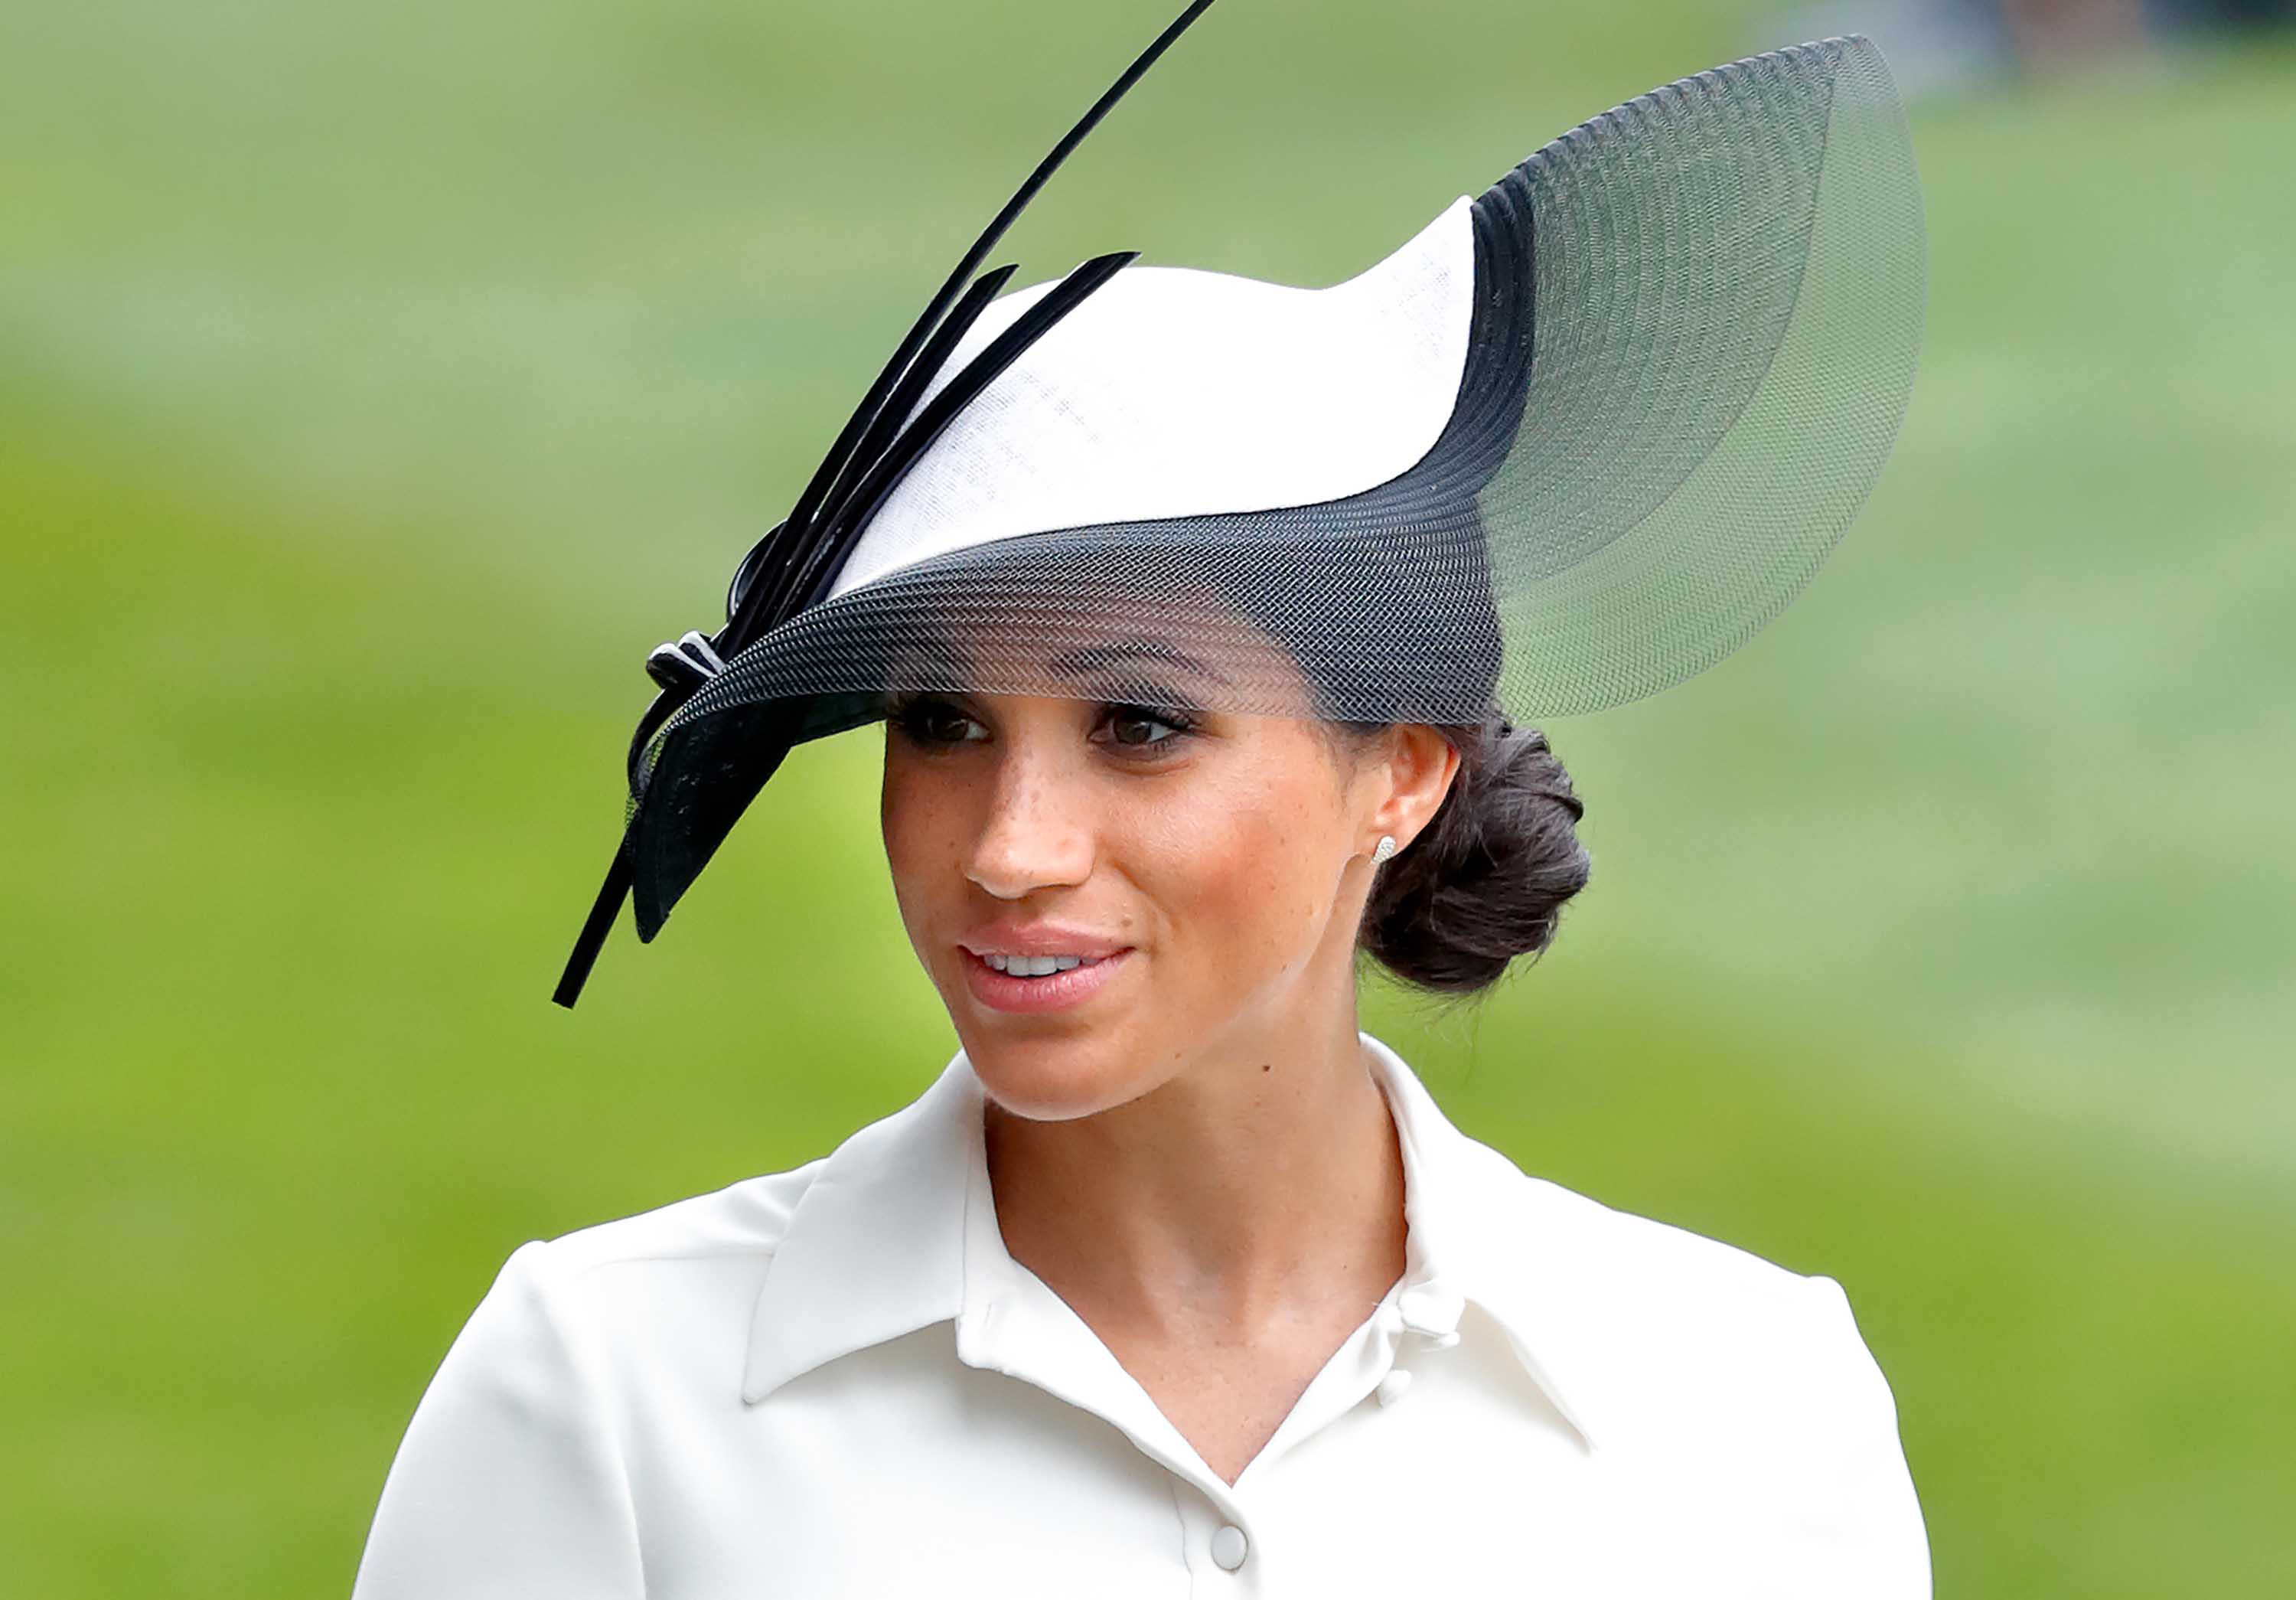 066b8e79163 Royal Ascot 2018  The most striking hats on show